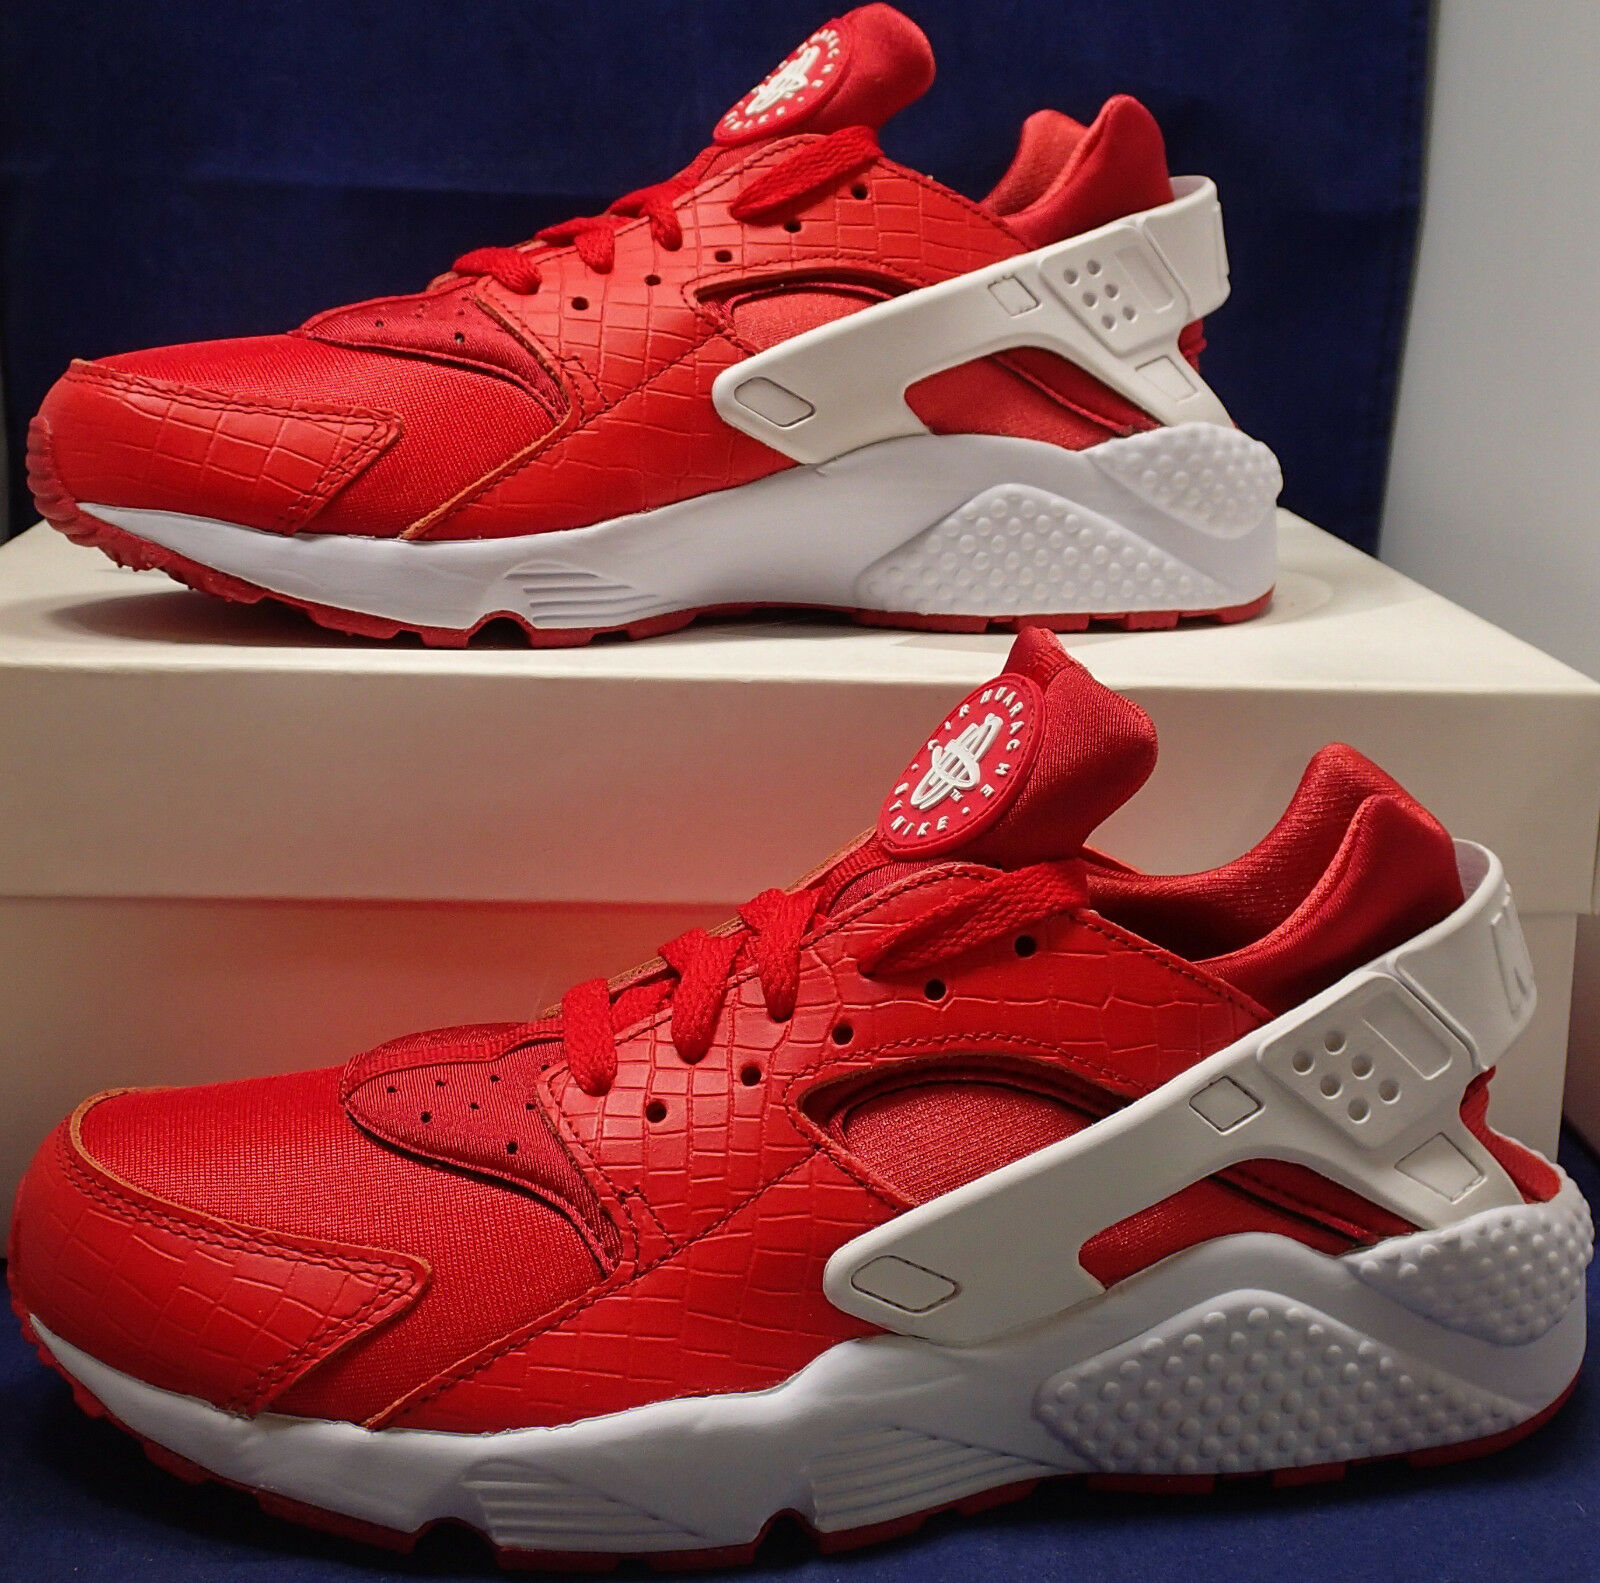 Womens Nike Air Huarache Run iD Croc Red White SZ 9.5 ( 777331-997 )